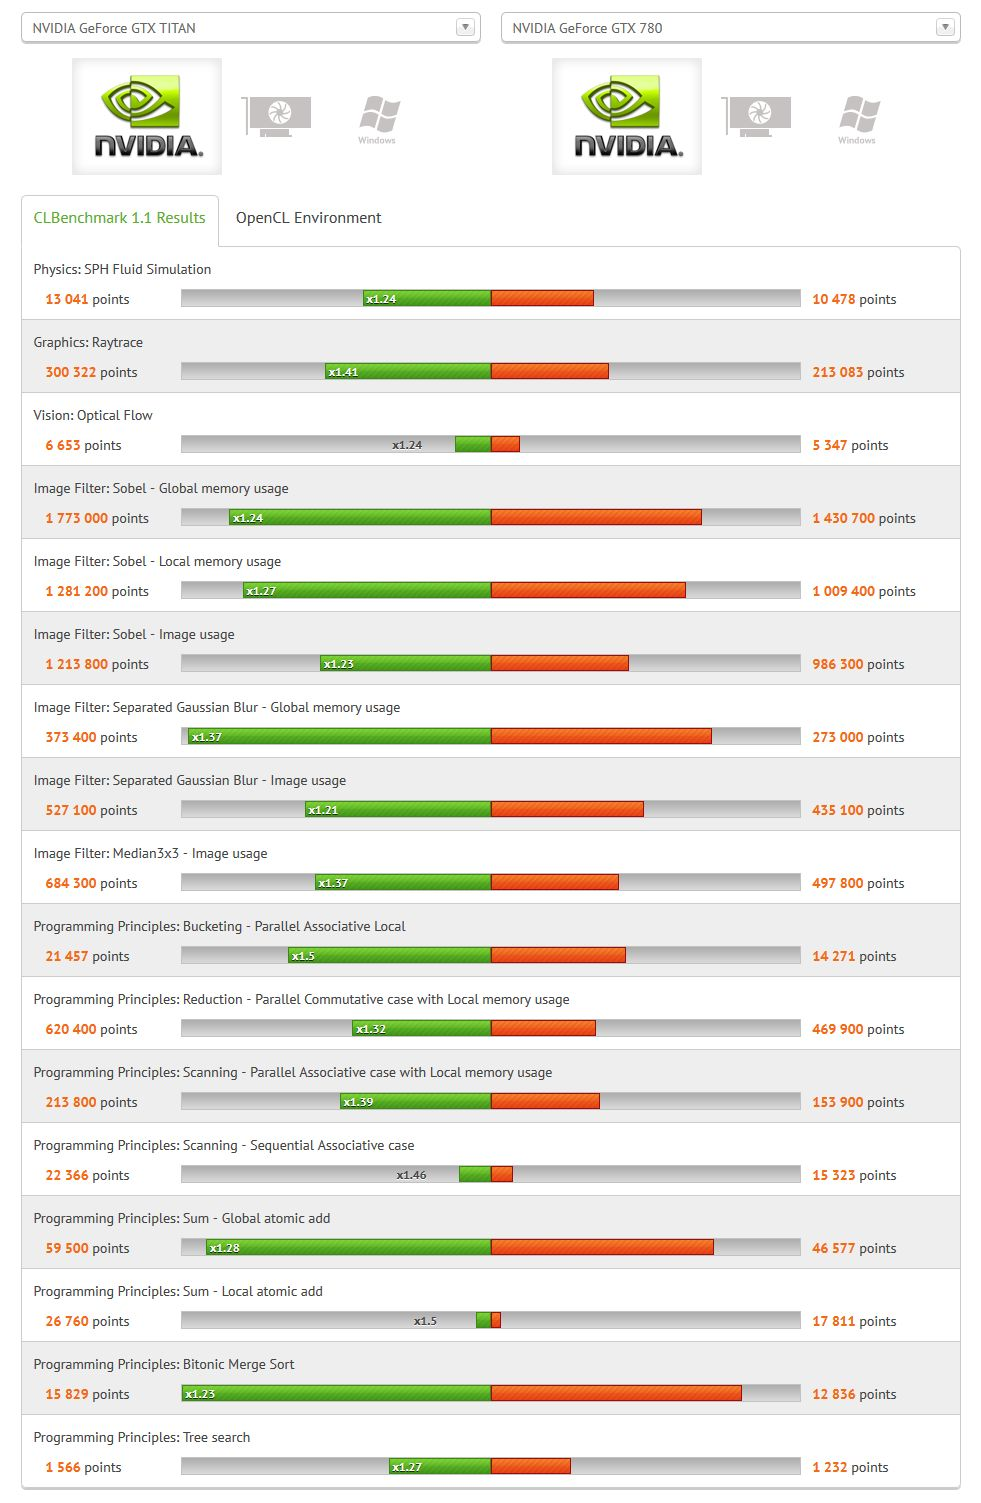 CLBenchmark GeForce GTX TITAN vs GeForce GTX 780